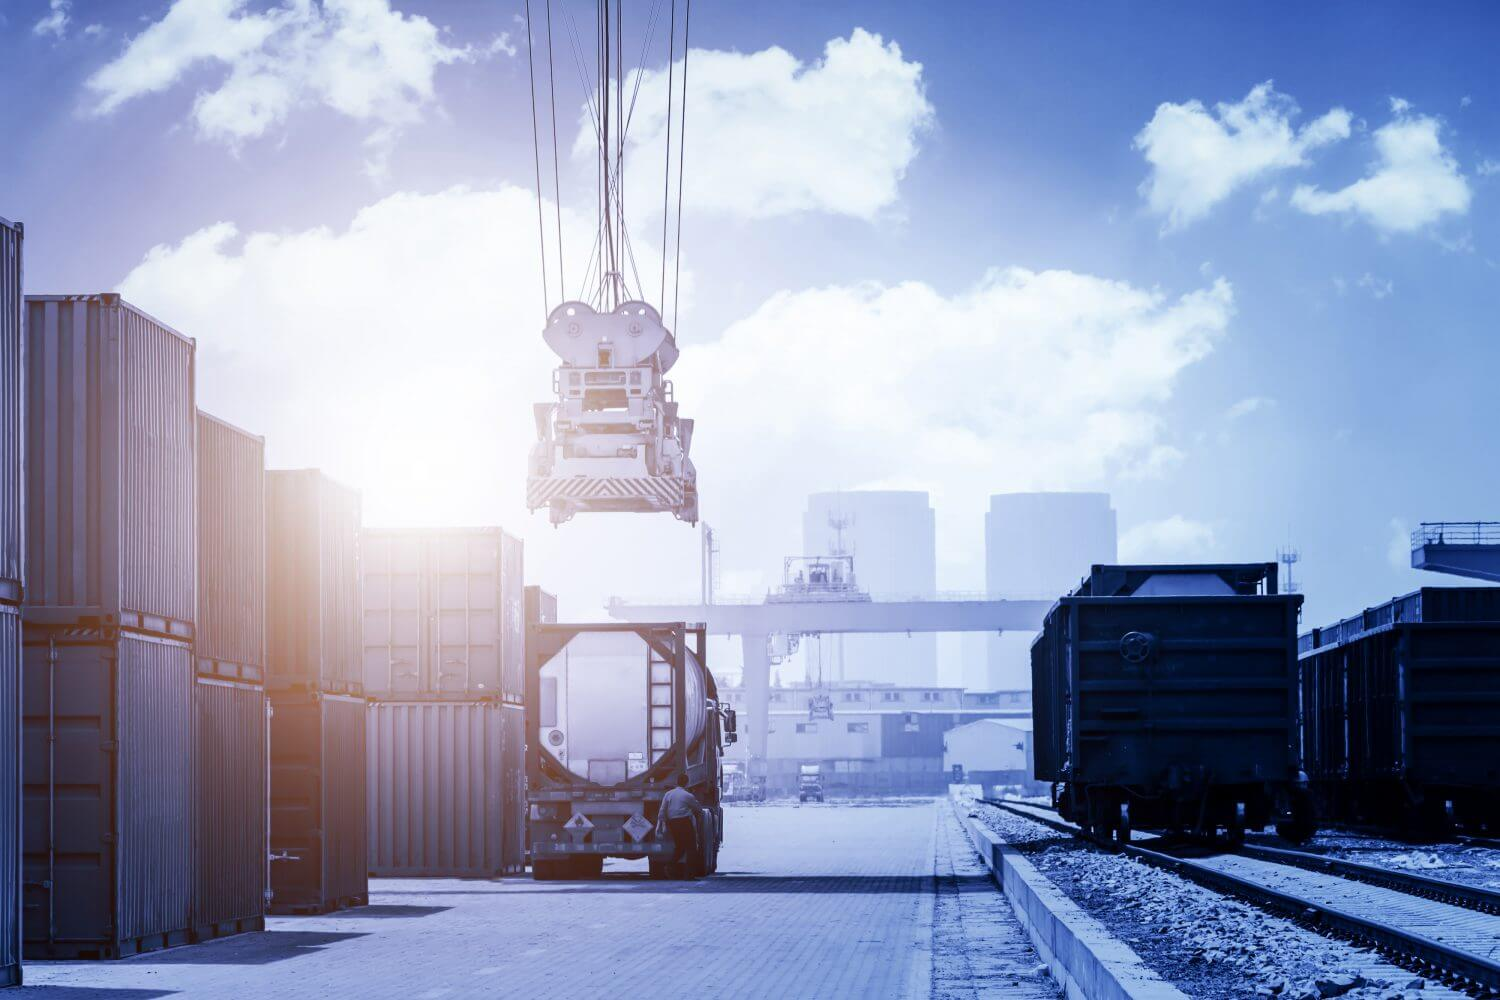 logistics will be more challenging and advanced in the future with these 7 technologies to improve logistics efficiency.